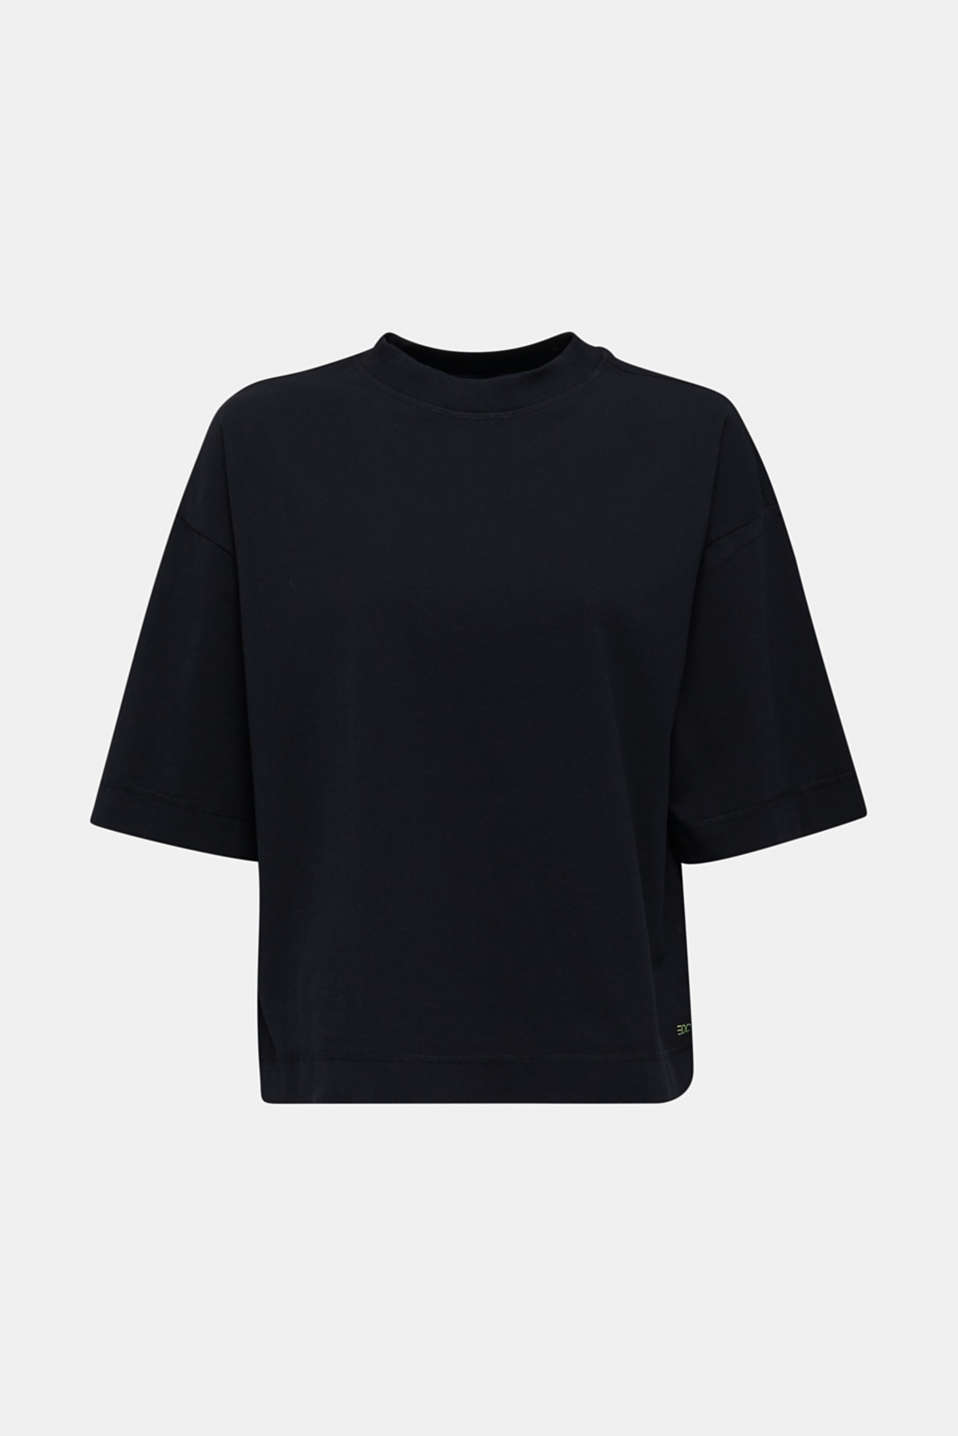 Loose T-shirt in 100% cotton, BLACK, detail image number 7